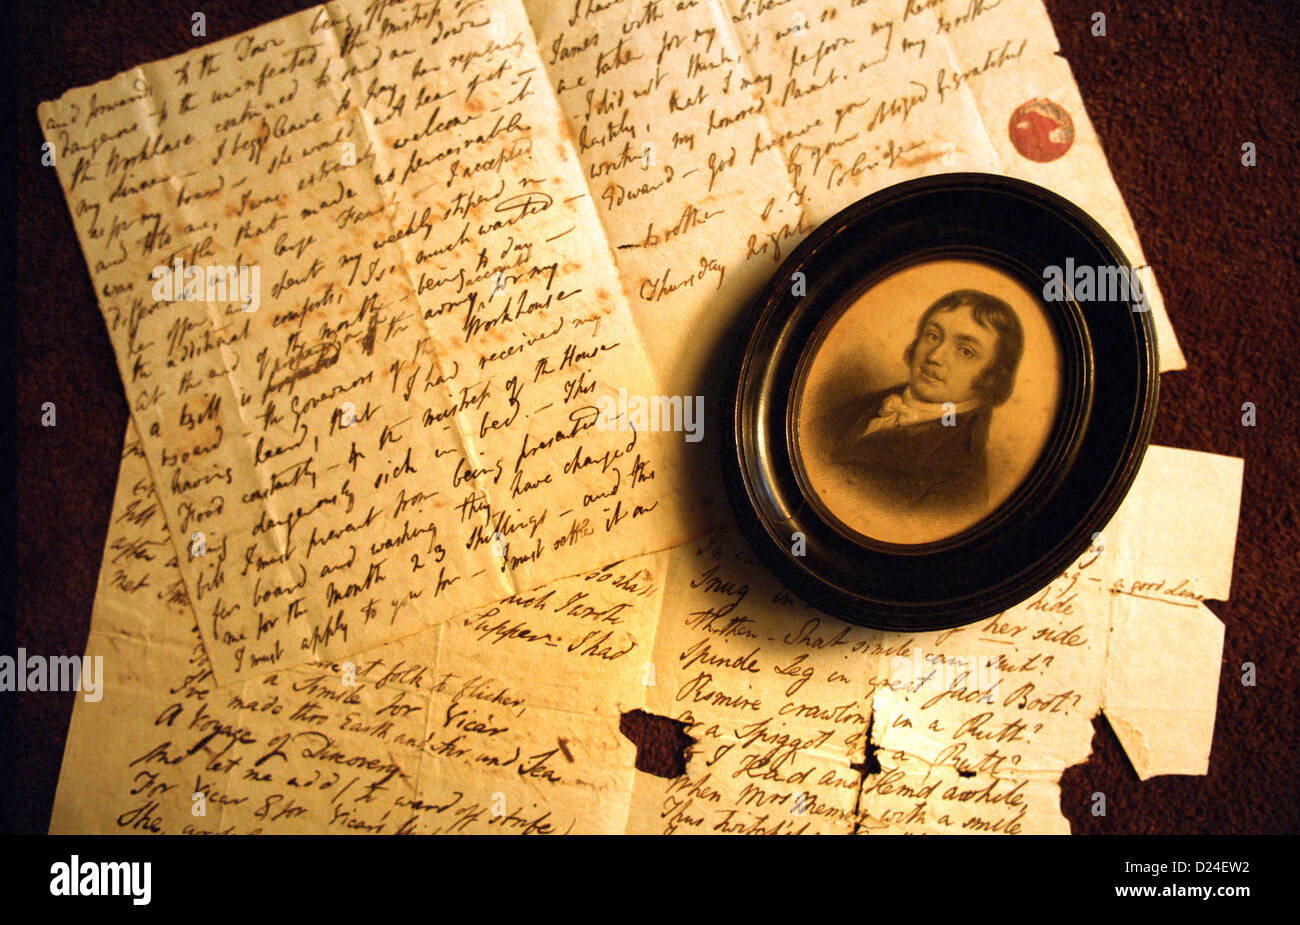 Letters written by poet Samuel Taylor Coleridge. *EDITORIAL USE ONLY* - Stock Image